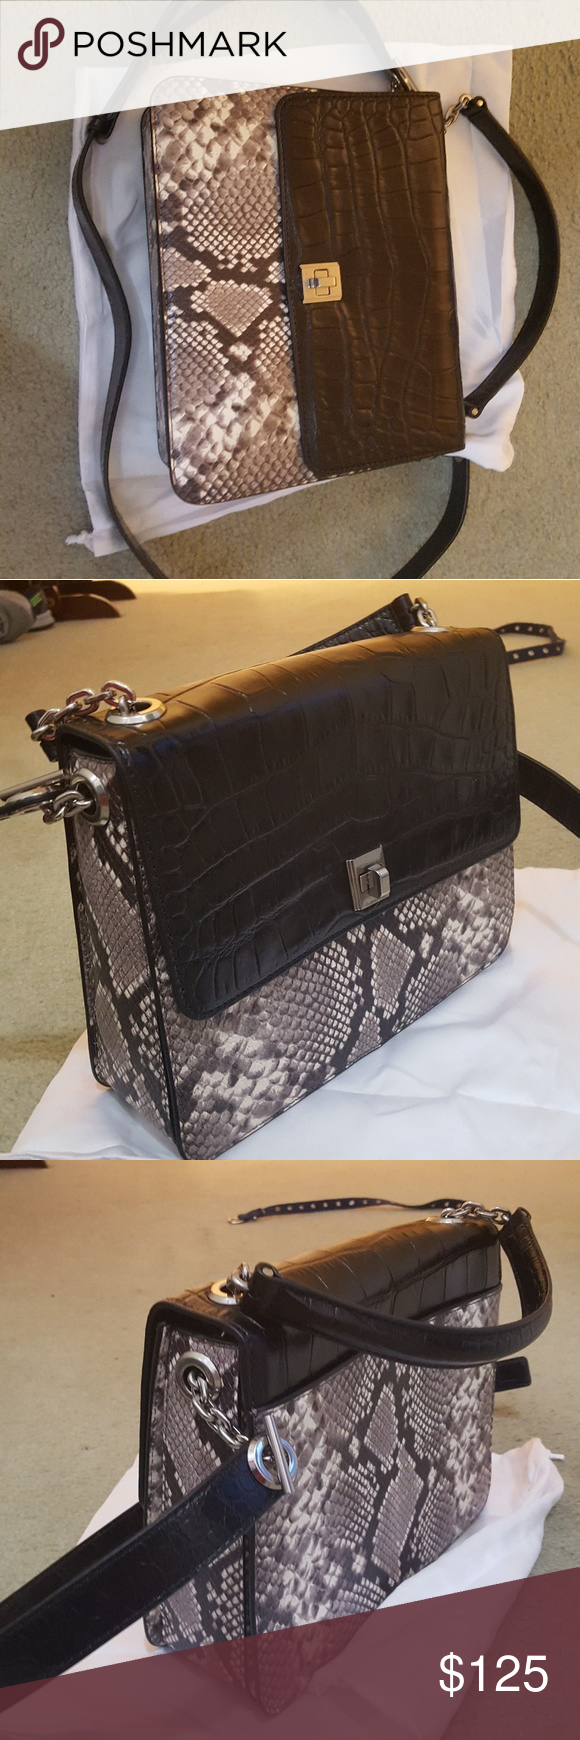 7a7dd352c37b Michael Kors purse NWOT faux snakeskin purse. Dimensions are 8 inch tall by 10.5  inch wide and 3 inch deep. Michael Kors Bags Crossbody Bags